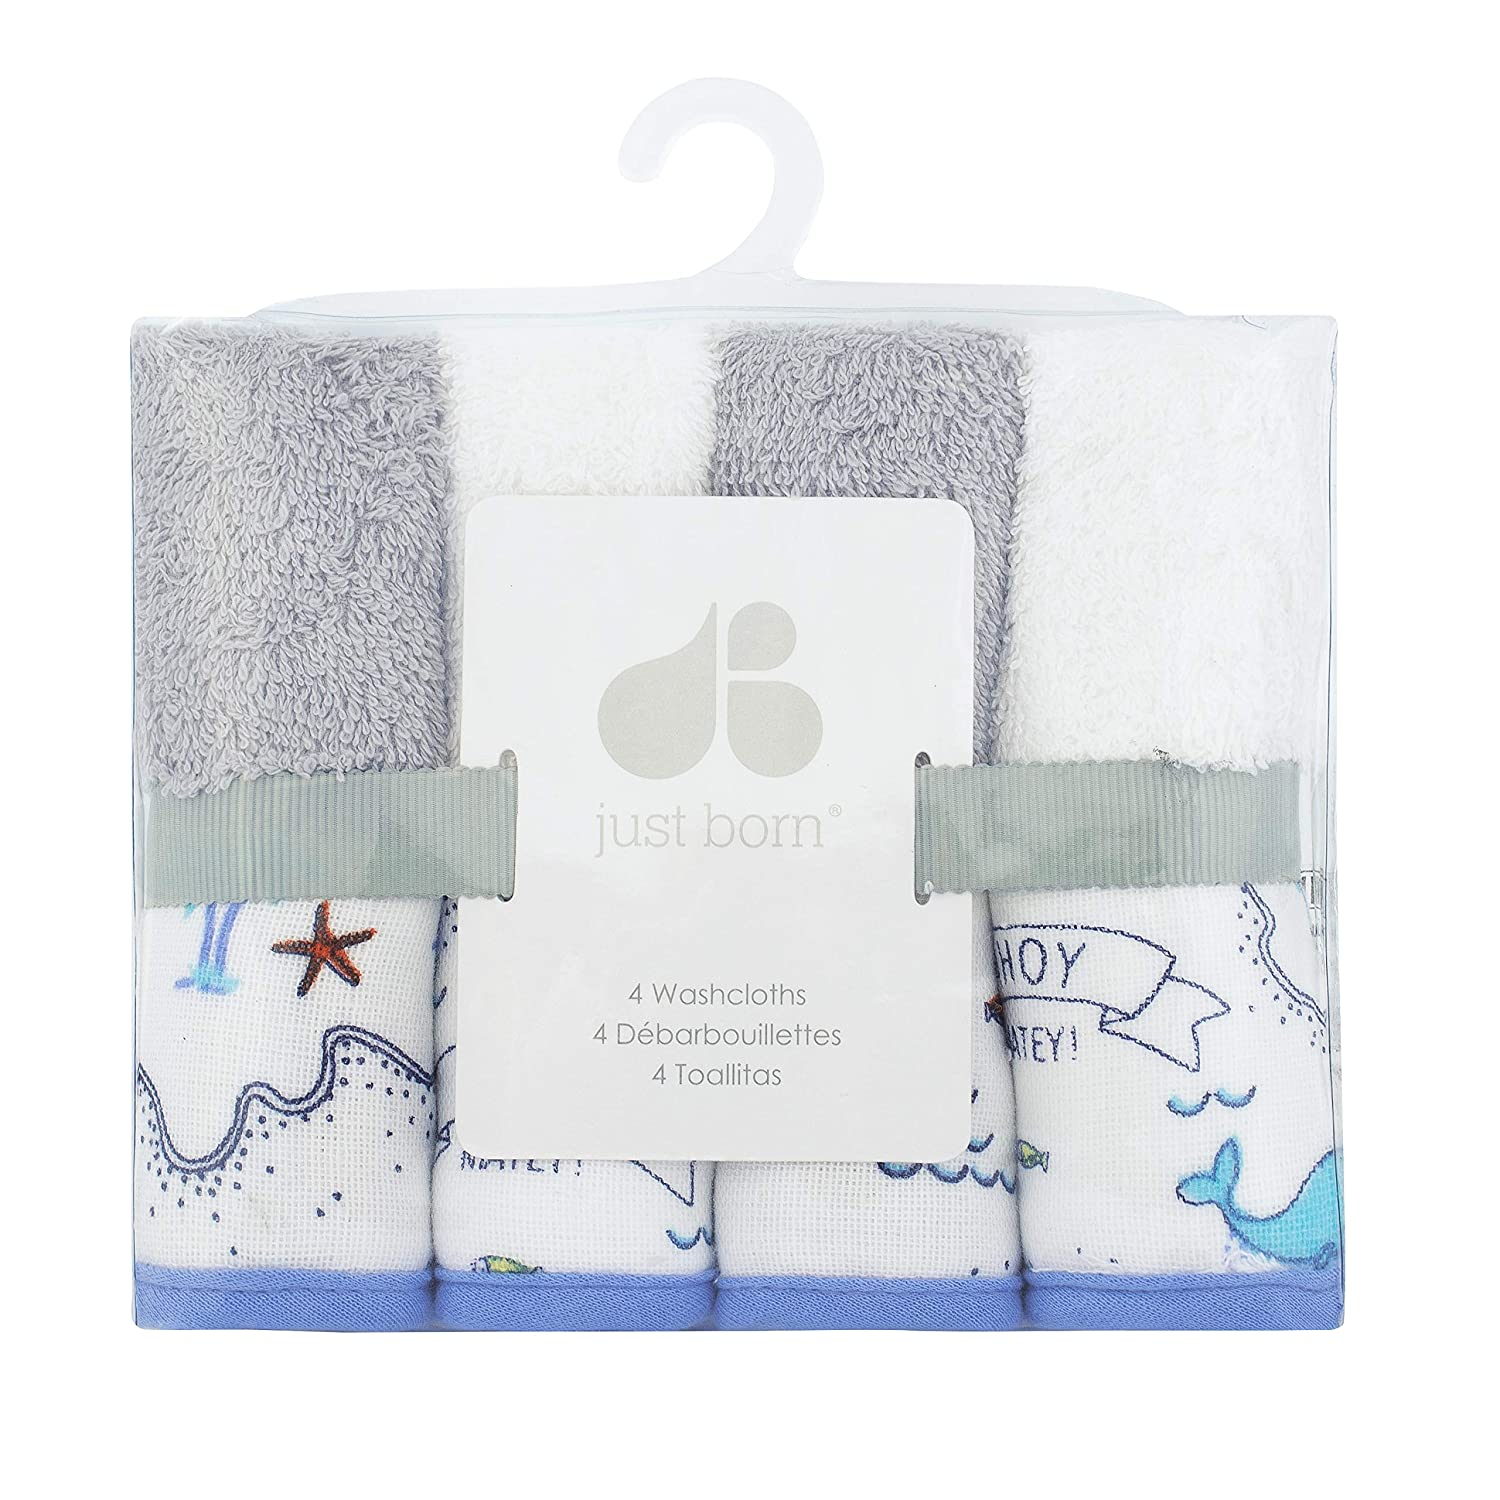 Amazon.com : Just Born 4-Pack Woven Washcloth, Grey, White Sail, One Size : Baby